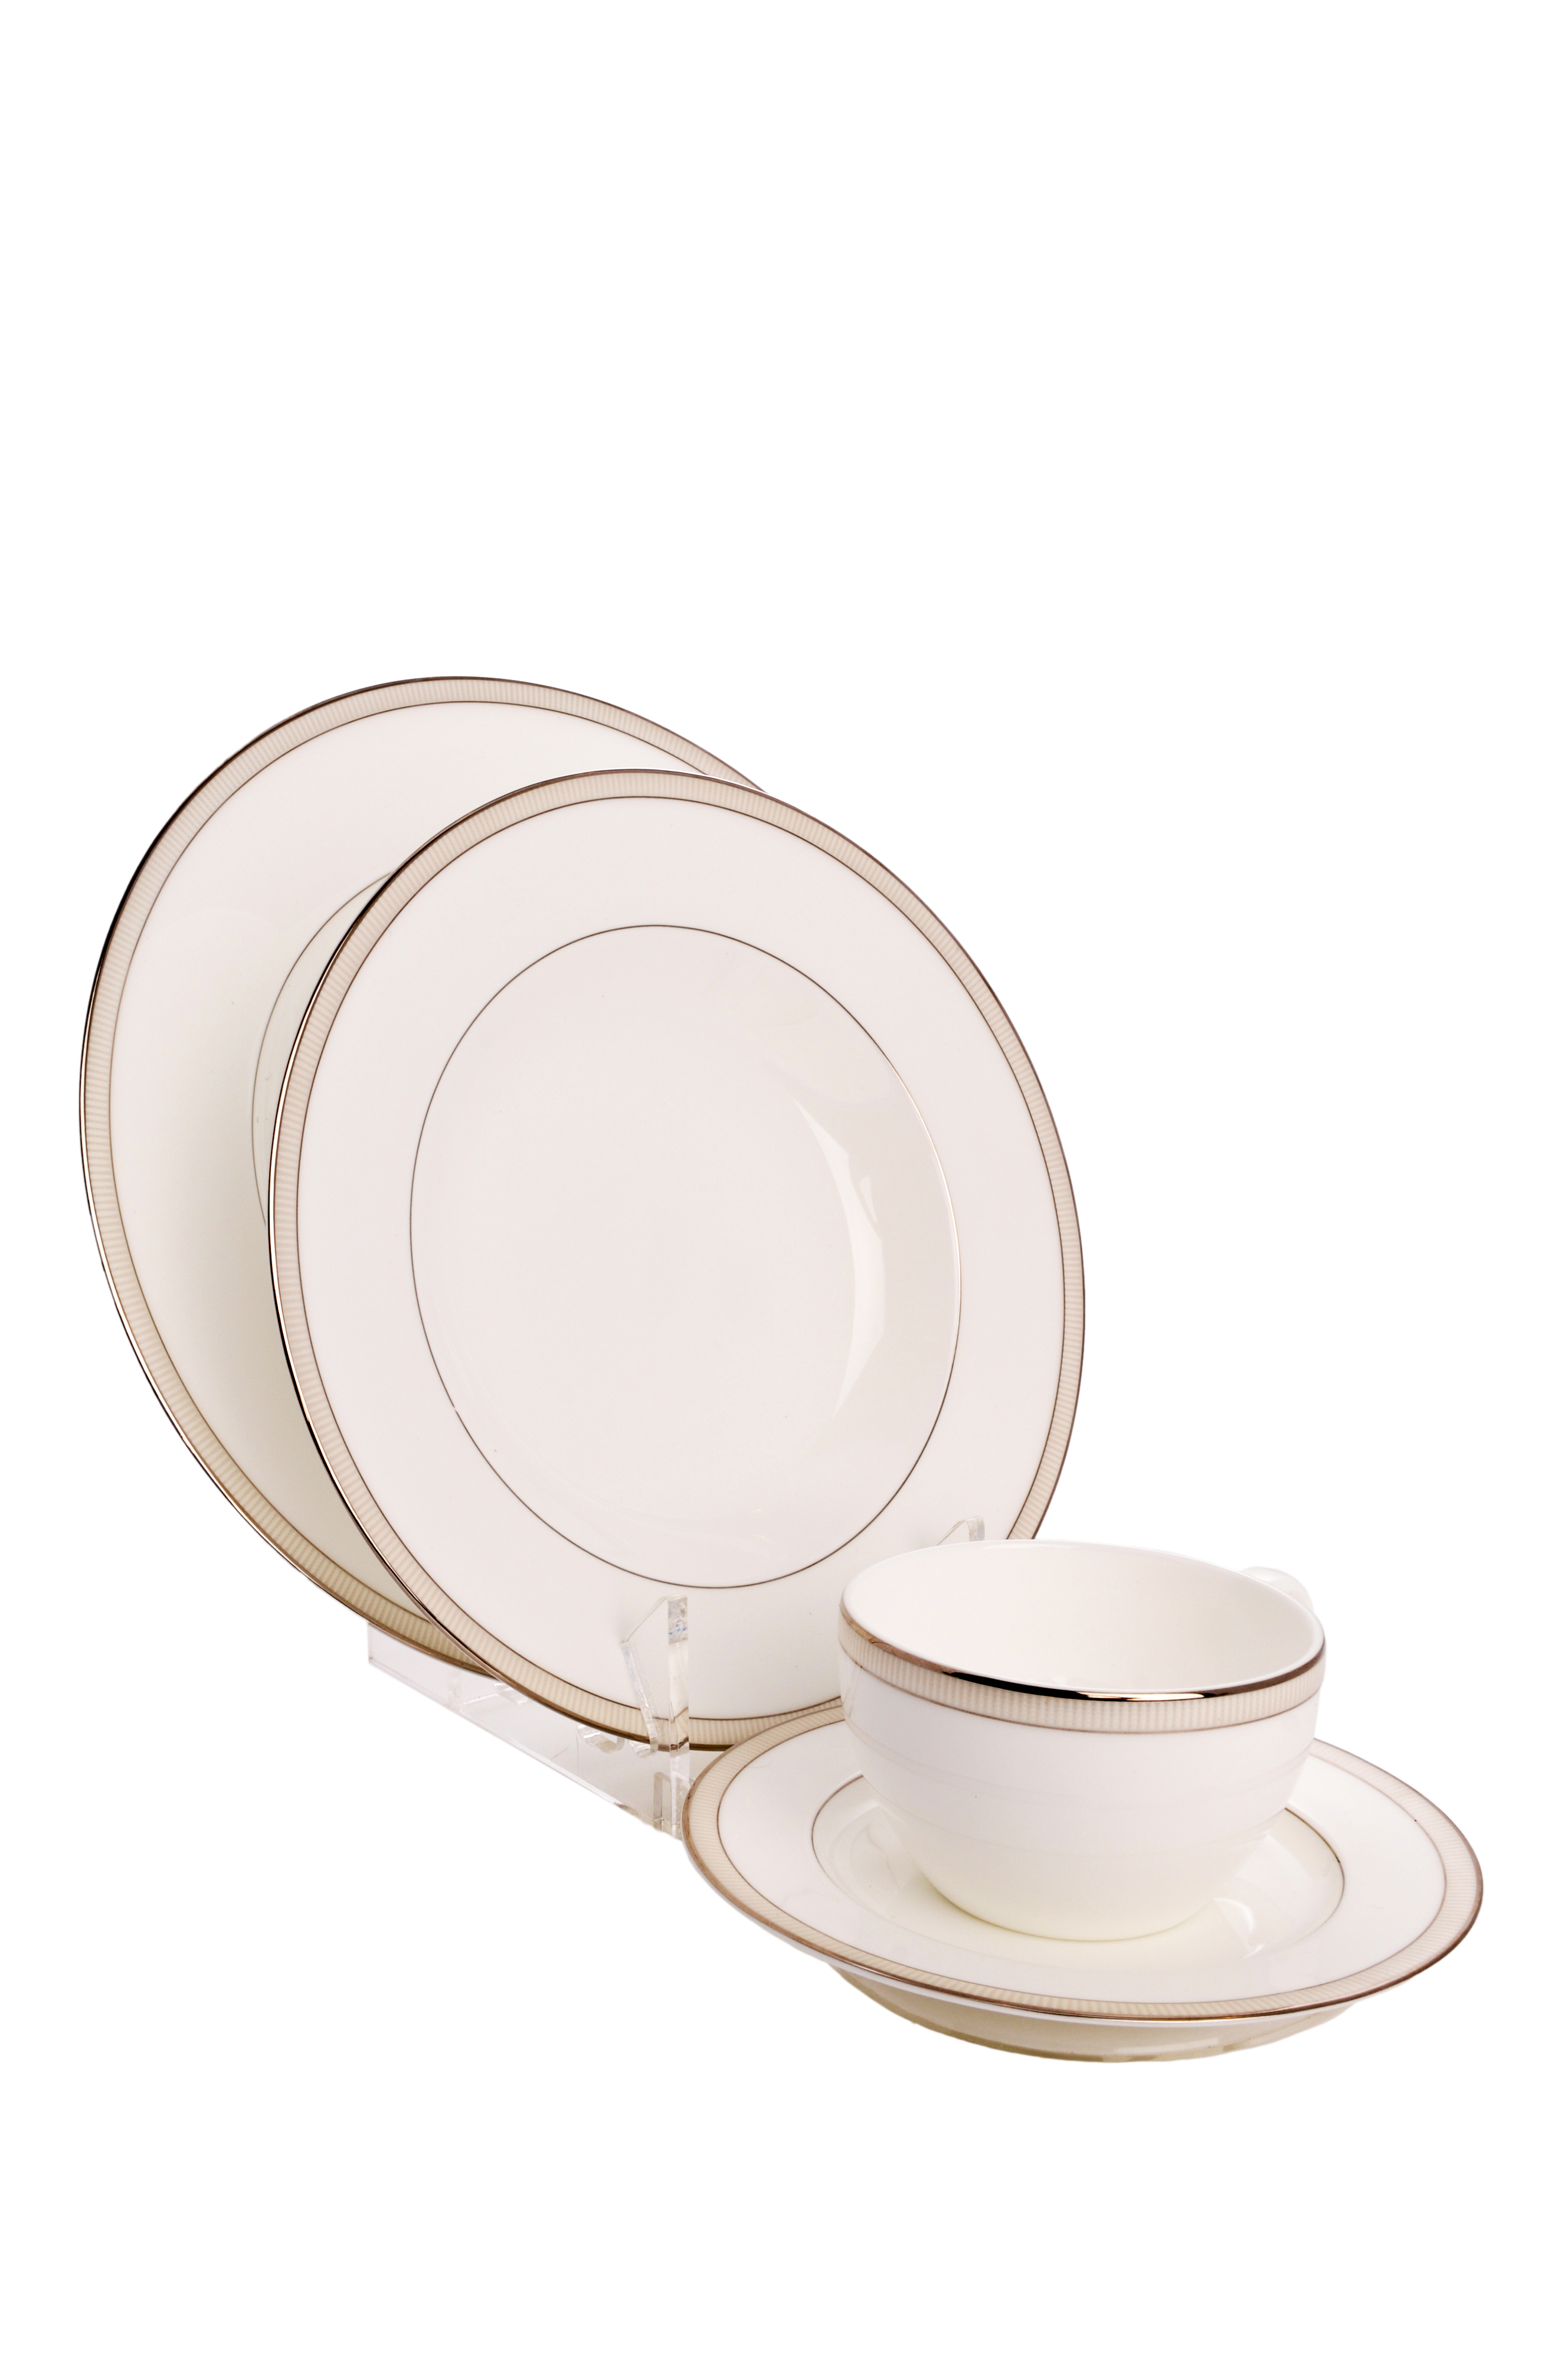 Clear Acrylic 4 Piece Dinnerware / China / Place Setting Display Stand (Item #770)  sc 1 st  THB Products LLC & Clear Acrylic 4 Piece Dinnerware / China / Place Setting Display ...